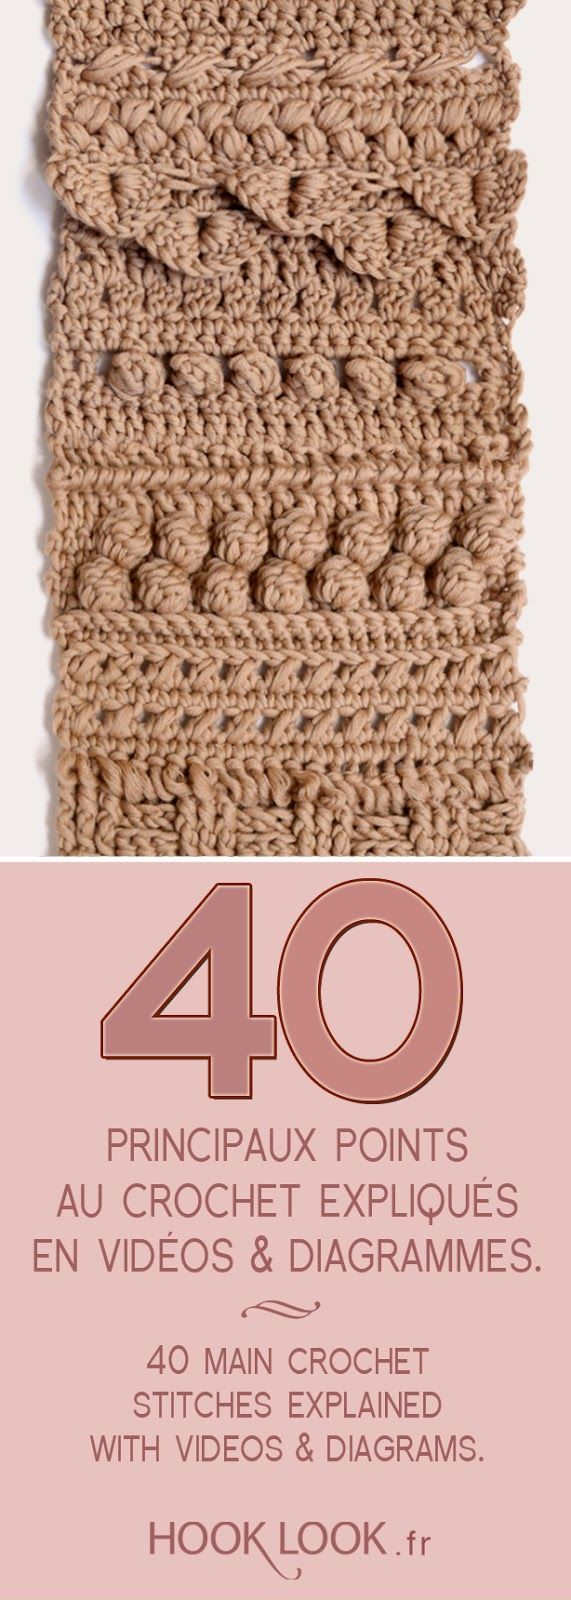 principaux points fantaisie au crochet expliqu s en vid os et diagrammes 40 main crochet stitches explained with vid os et diagrams by hooklook fr [ 571 x 1600 Pixel ]